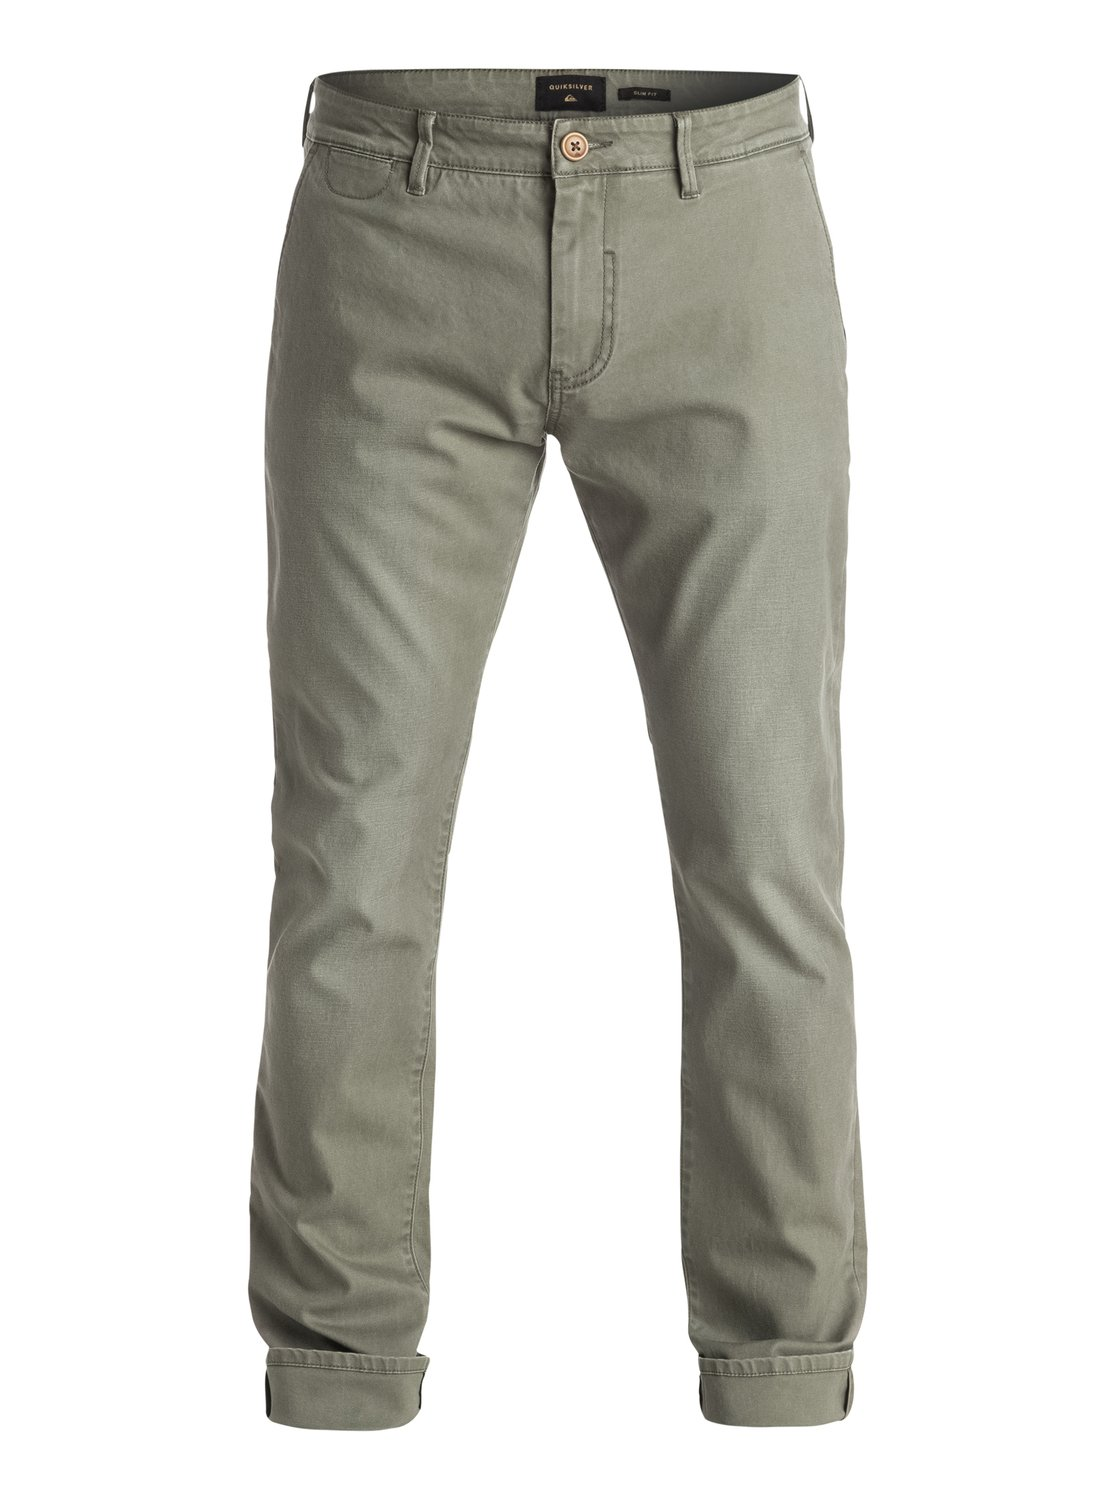 Shop the latest Chinos at END. - the leading retailer of globally sourced menswear. New products added daily.